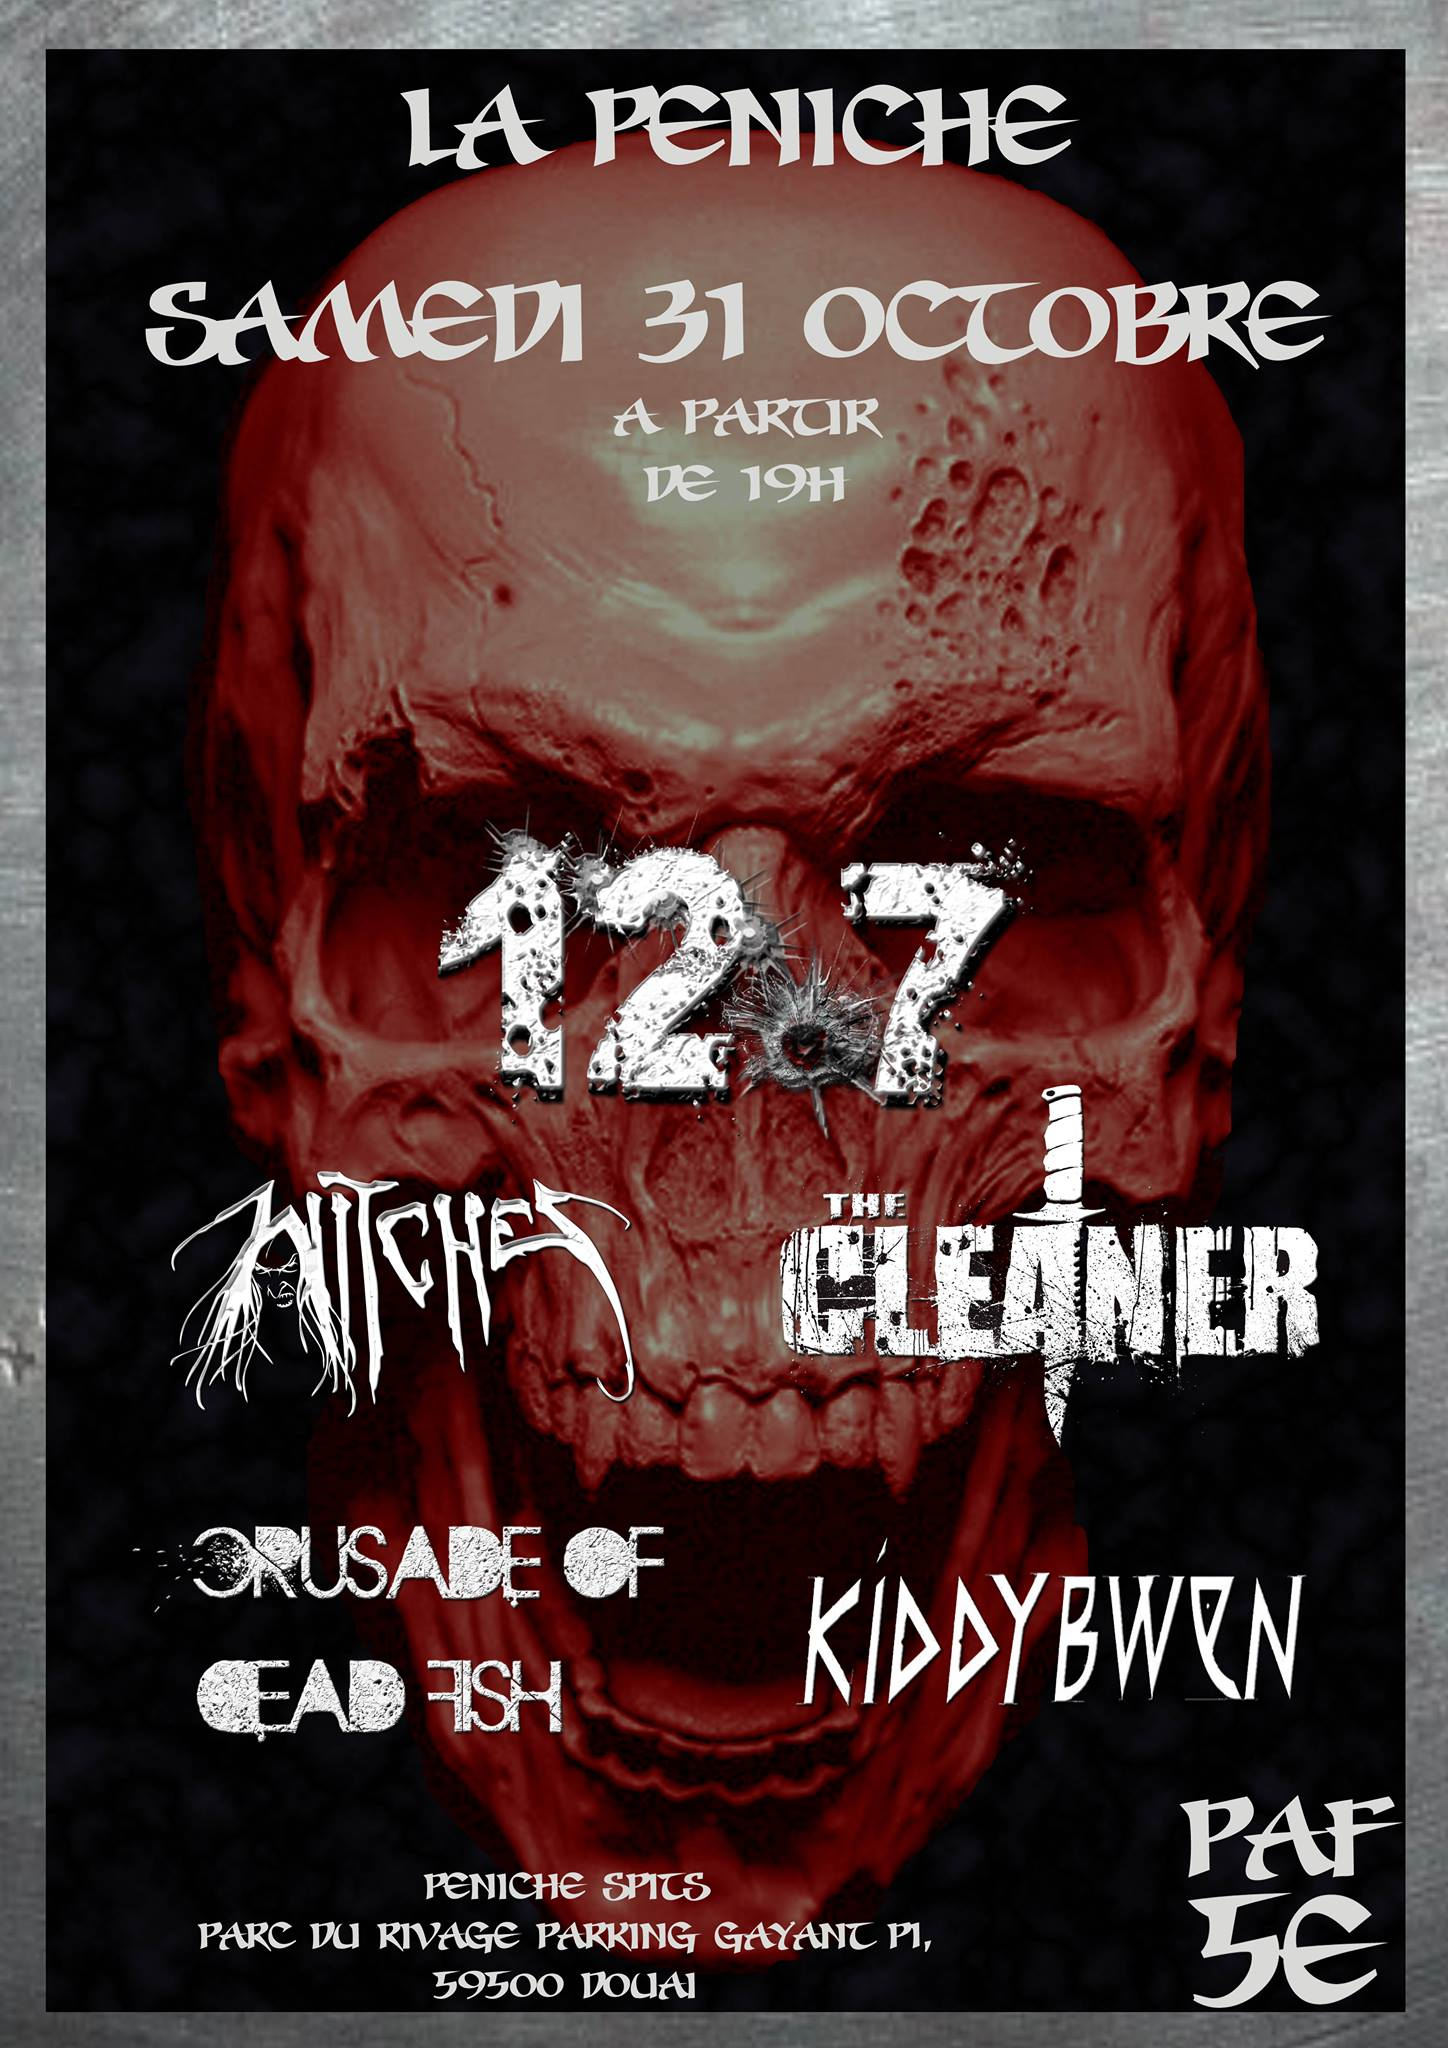 Witches flyer 12.7 + Witches + The Cleaner + Crusade of Dead Fish + Kiddybwen @ European Tour La Péniche Igelrock Douai (62), France